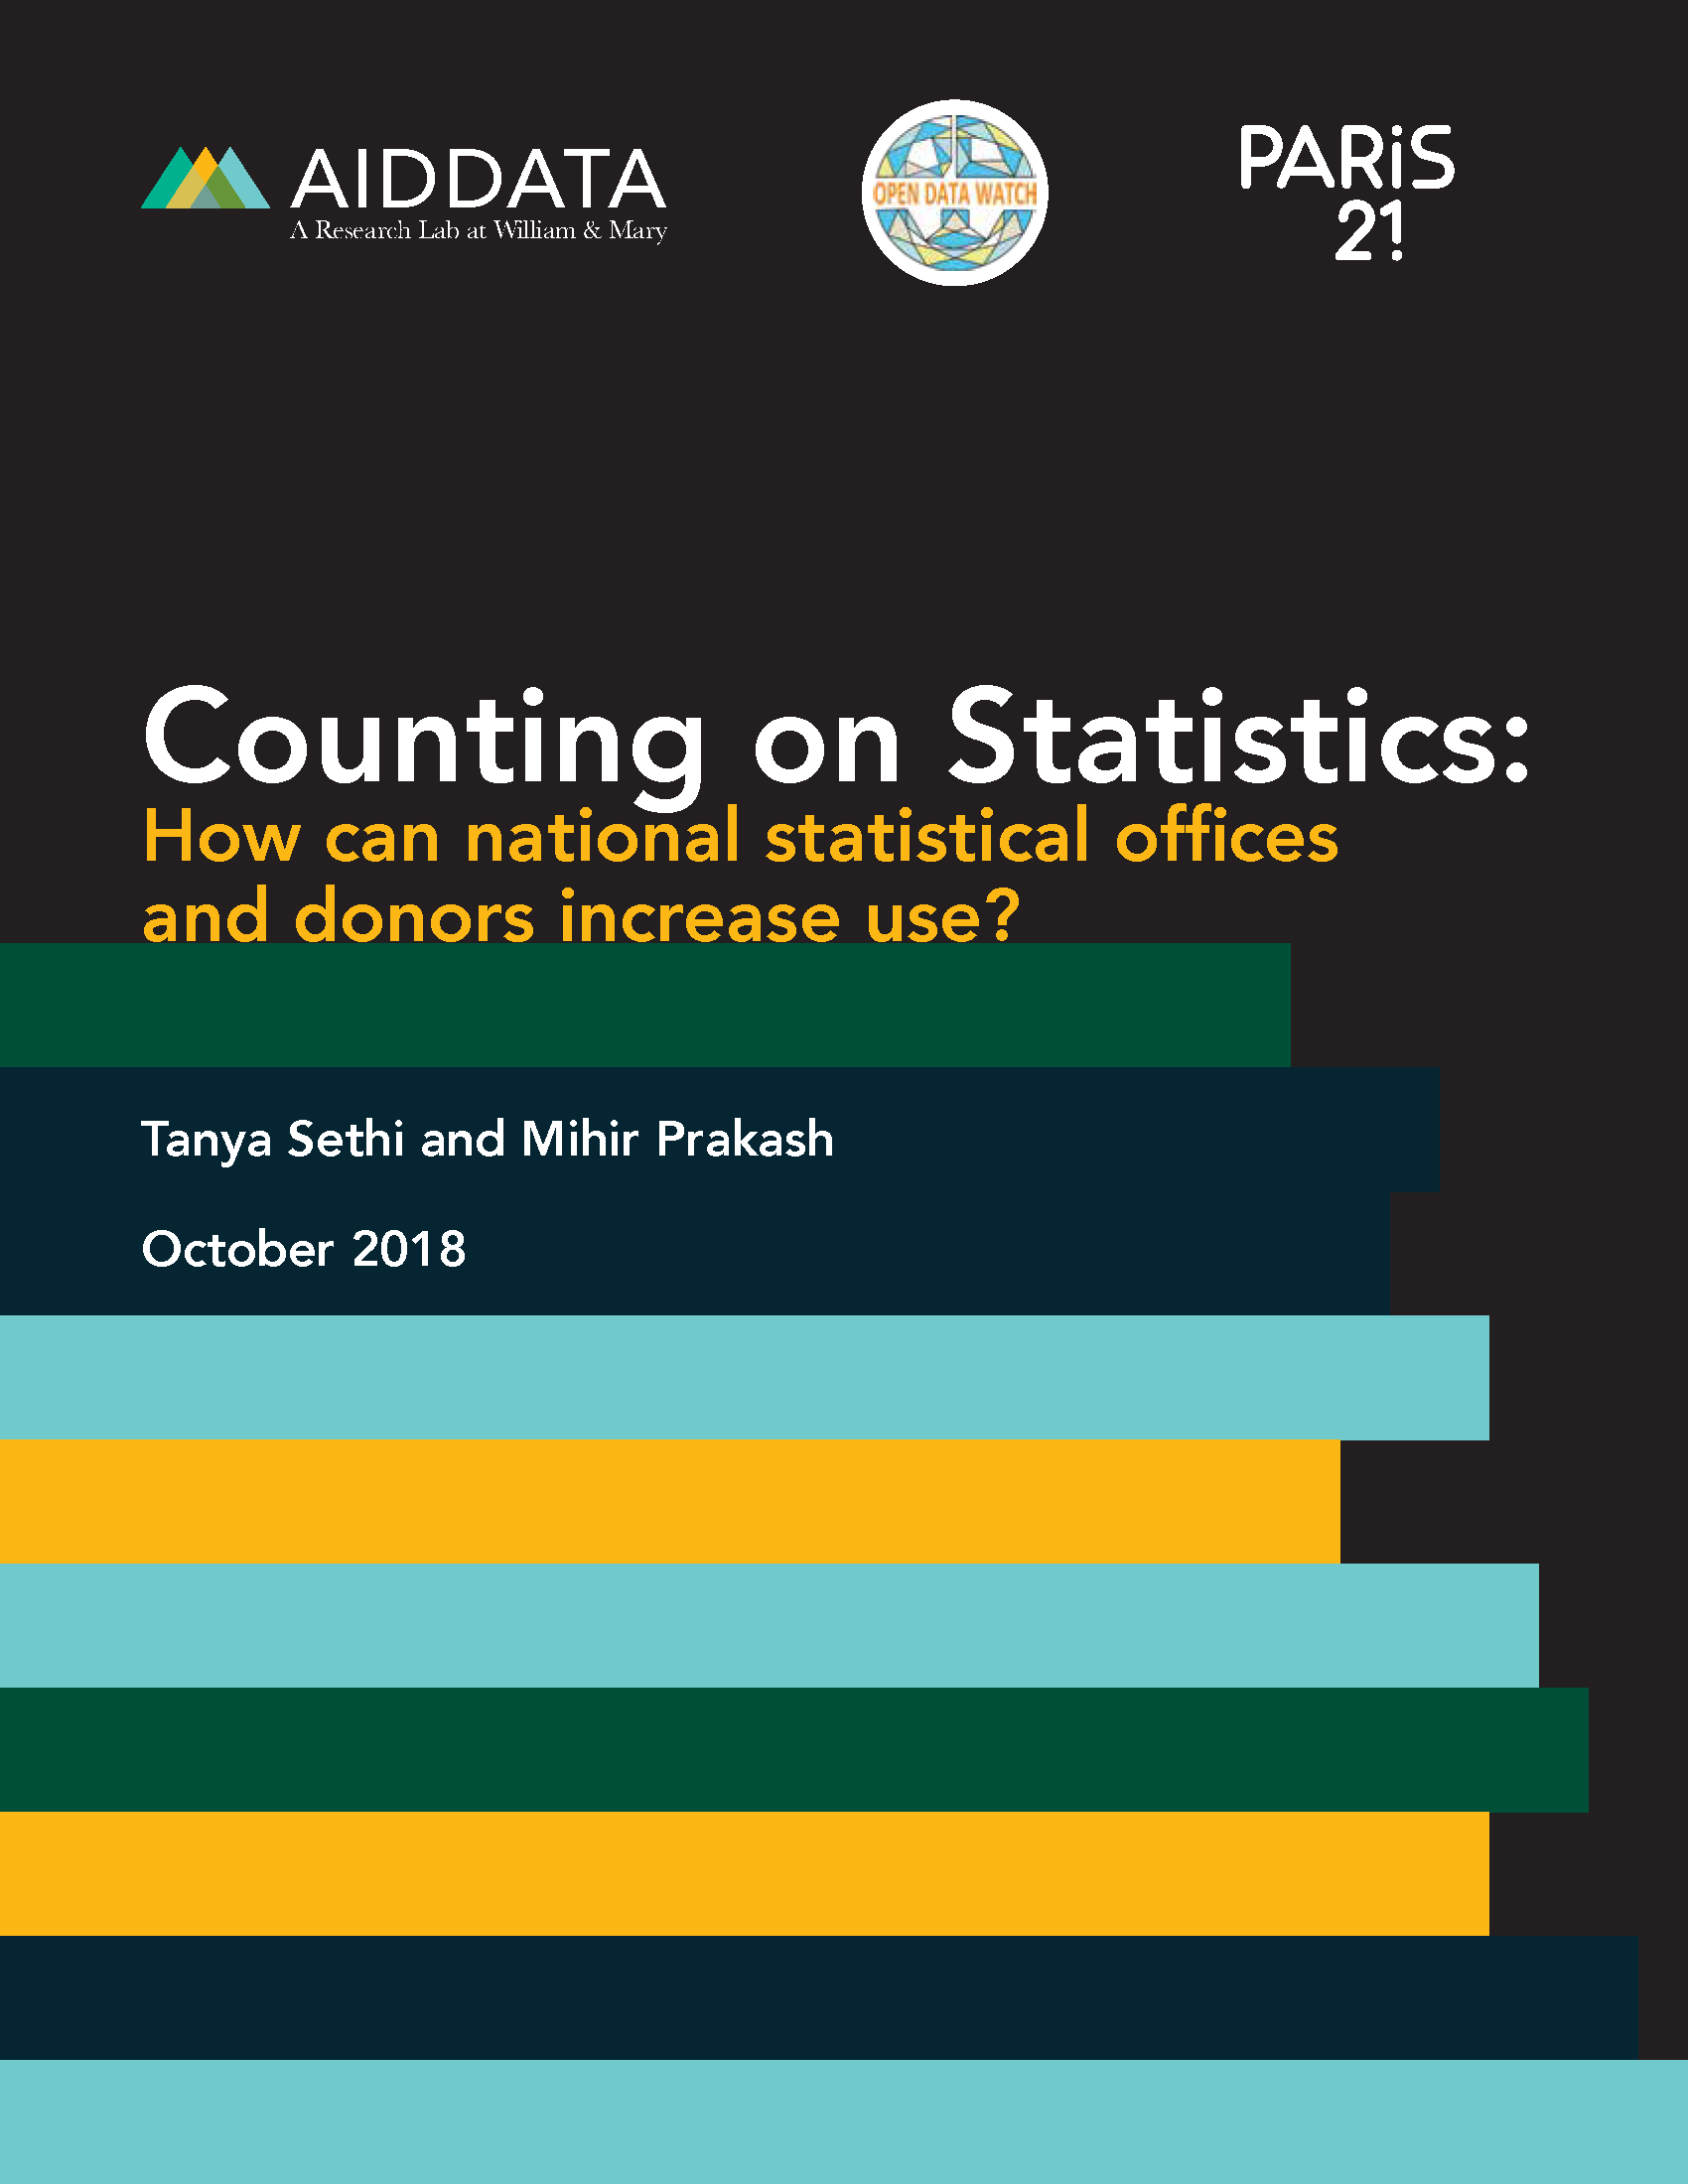 Counting on Statistics: How can national statistical offices and donors increase use?